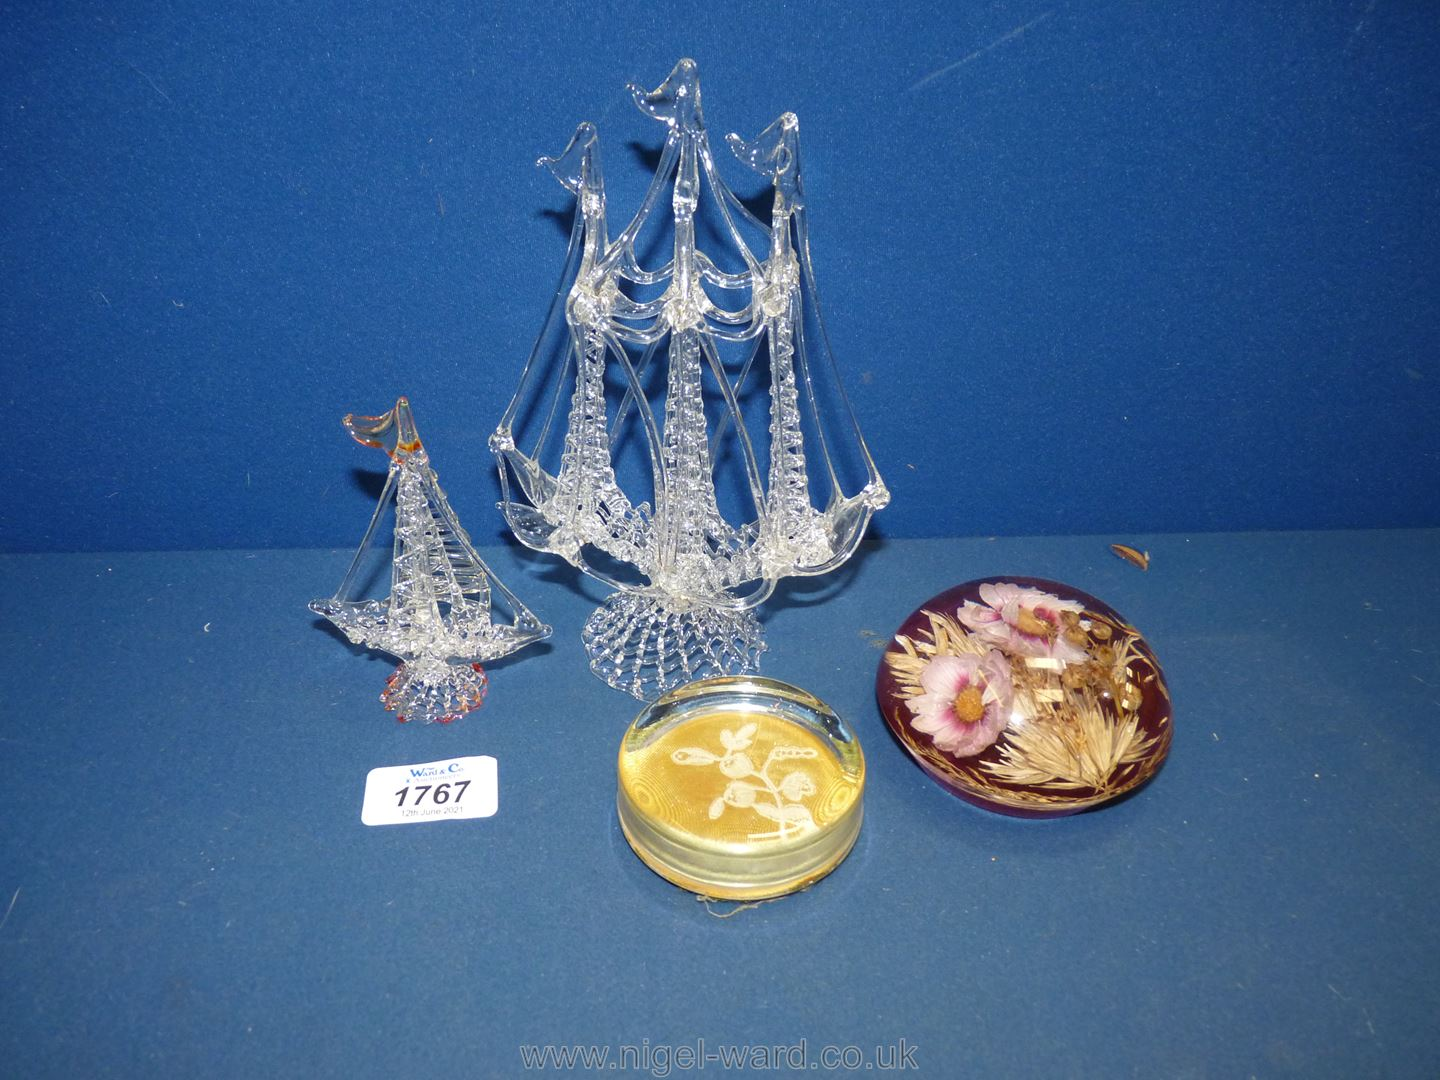 A spun glass model of a tall ship plus smaller one and two paperweights.